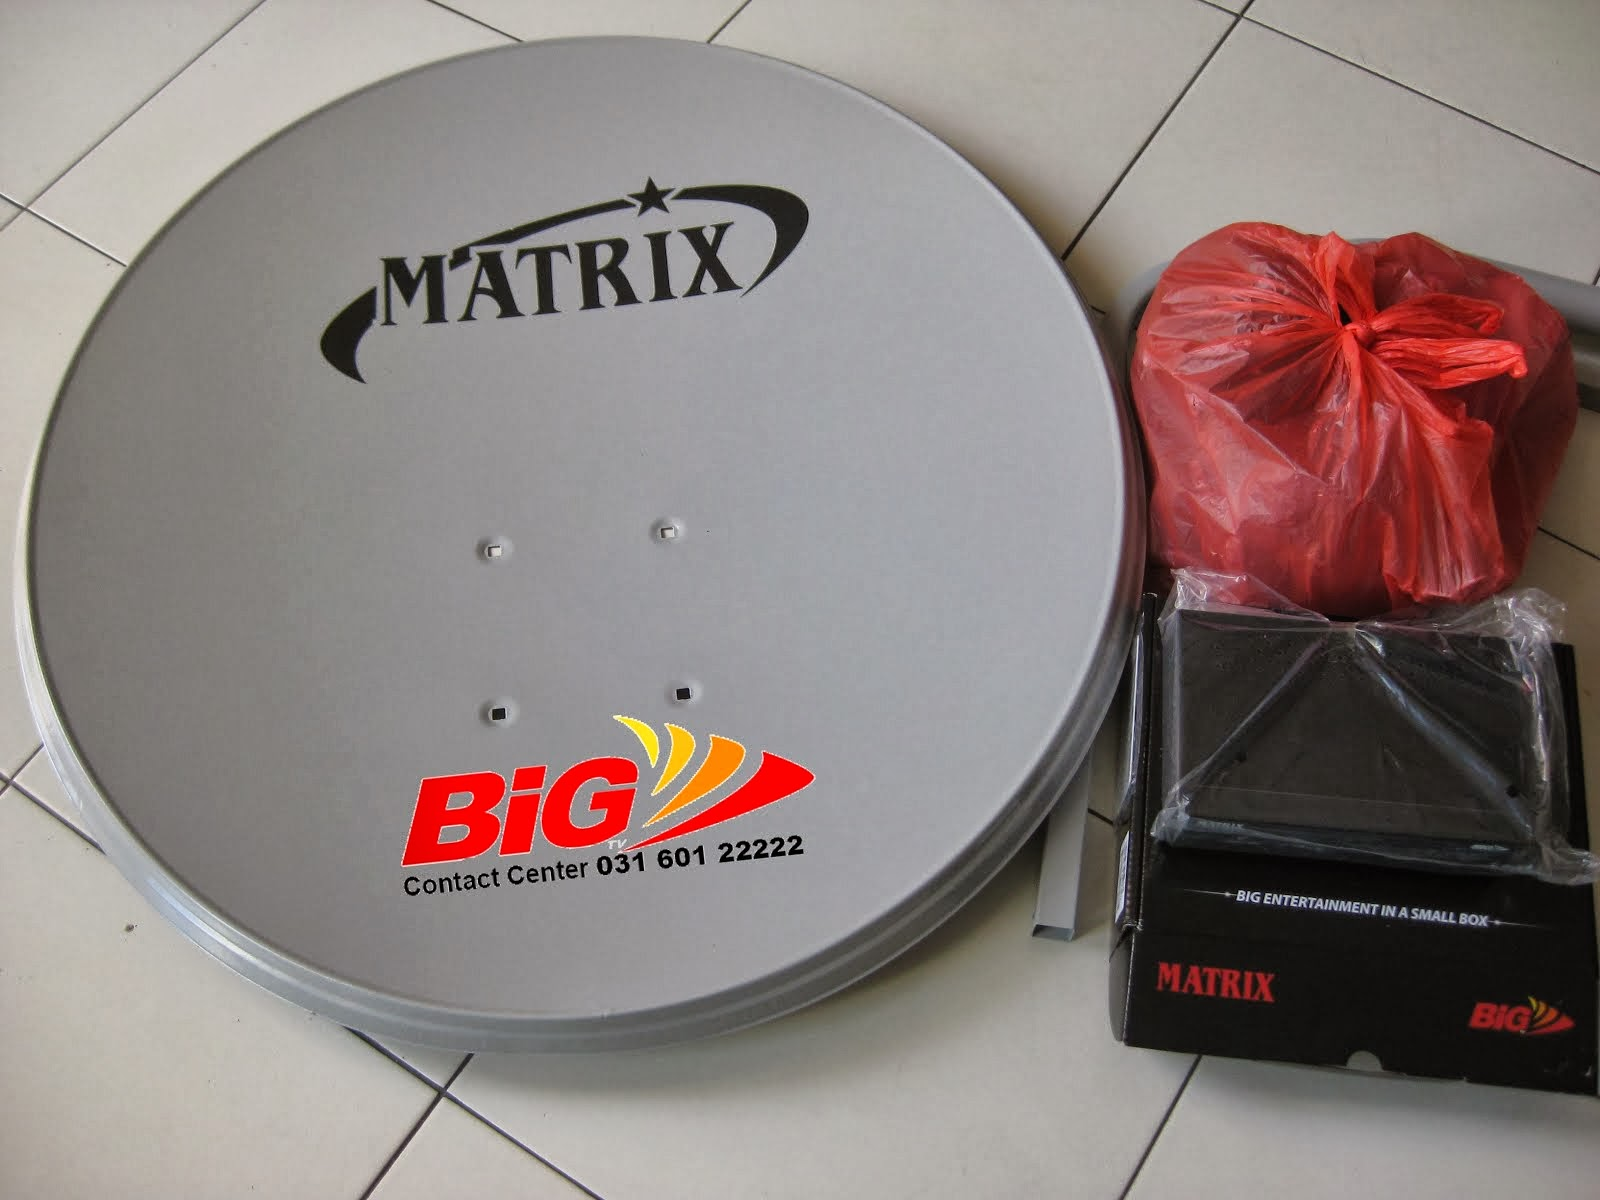 Matrix BIG TV